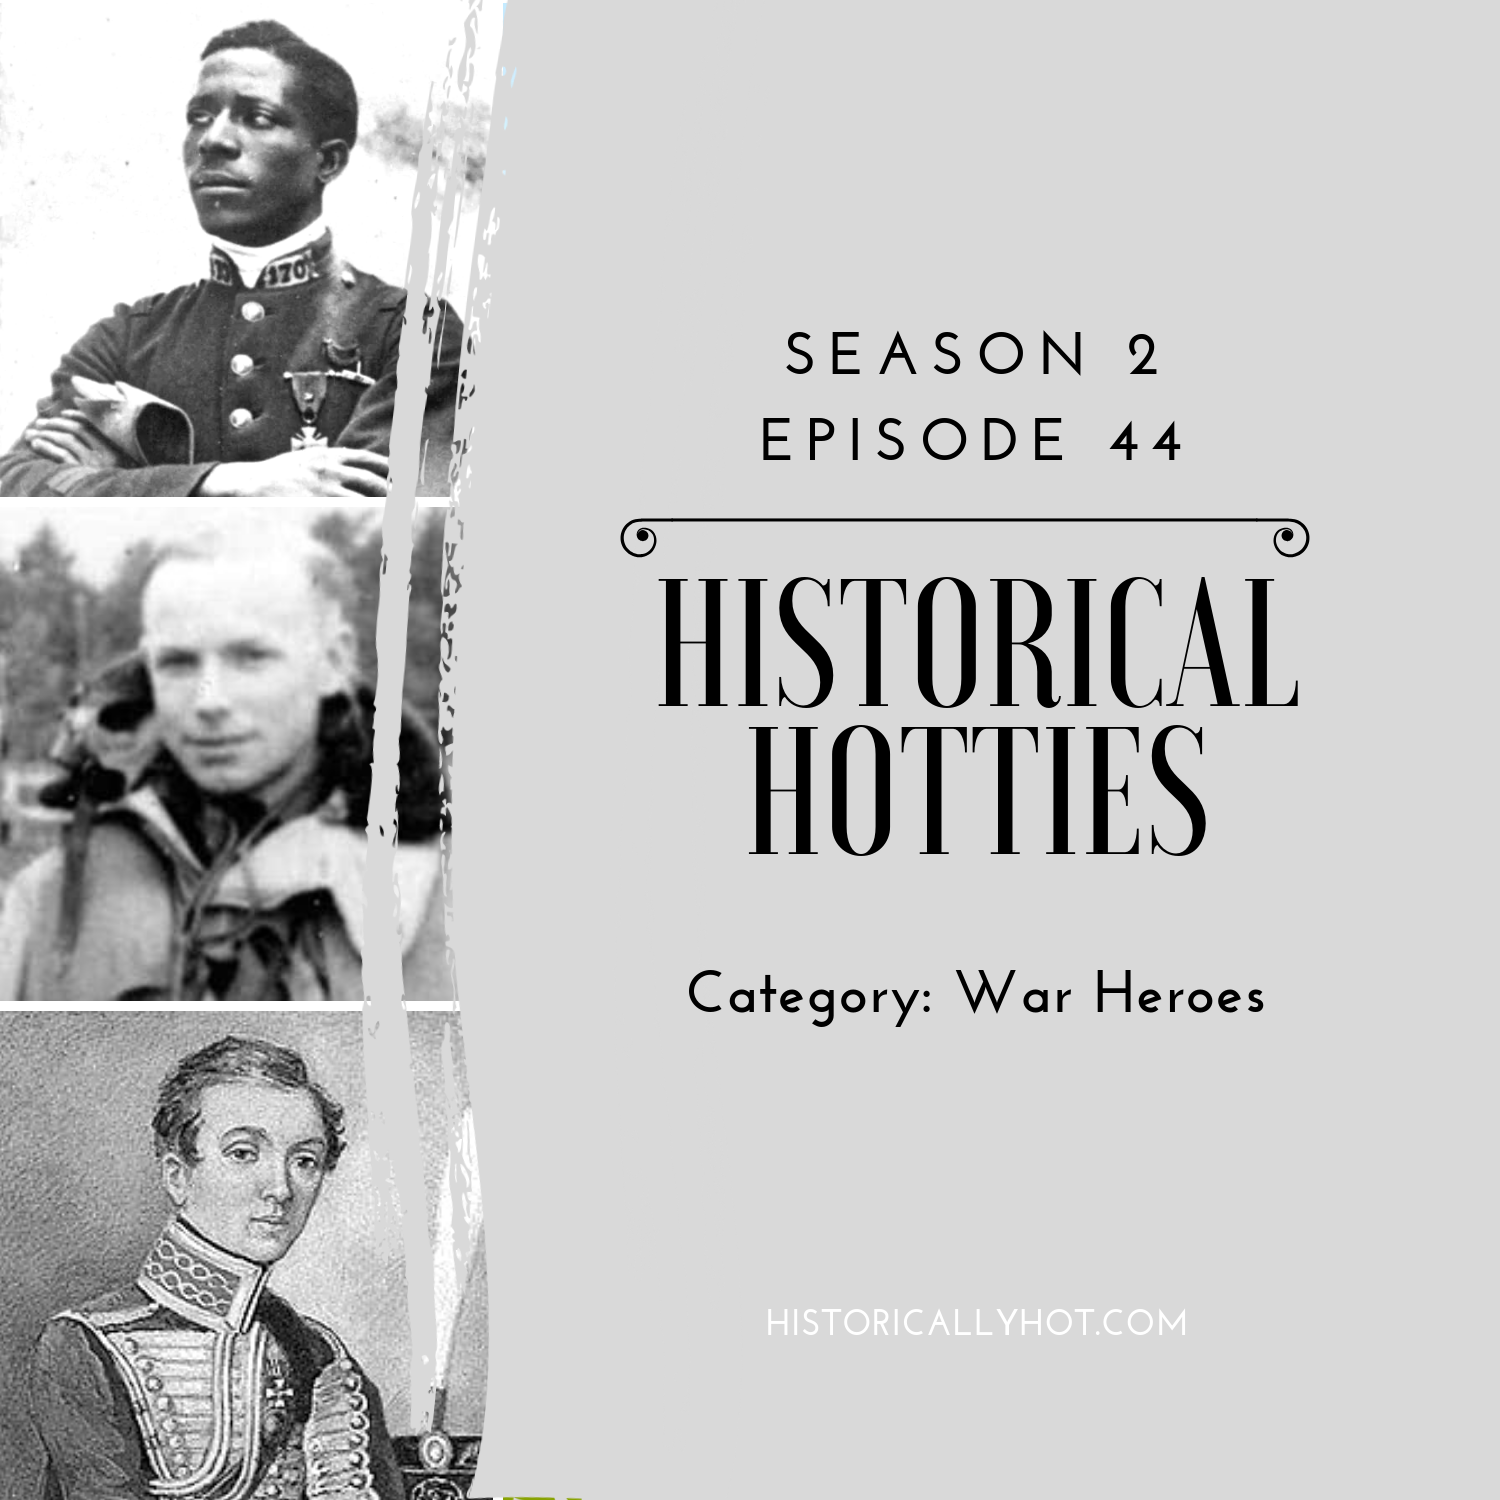 historical hotties war heroes